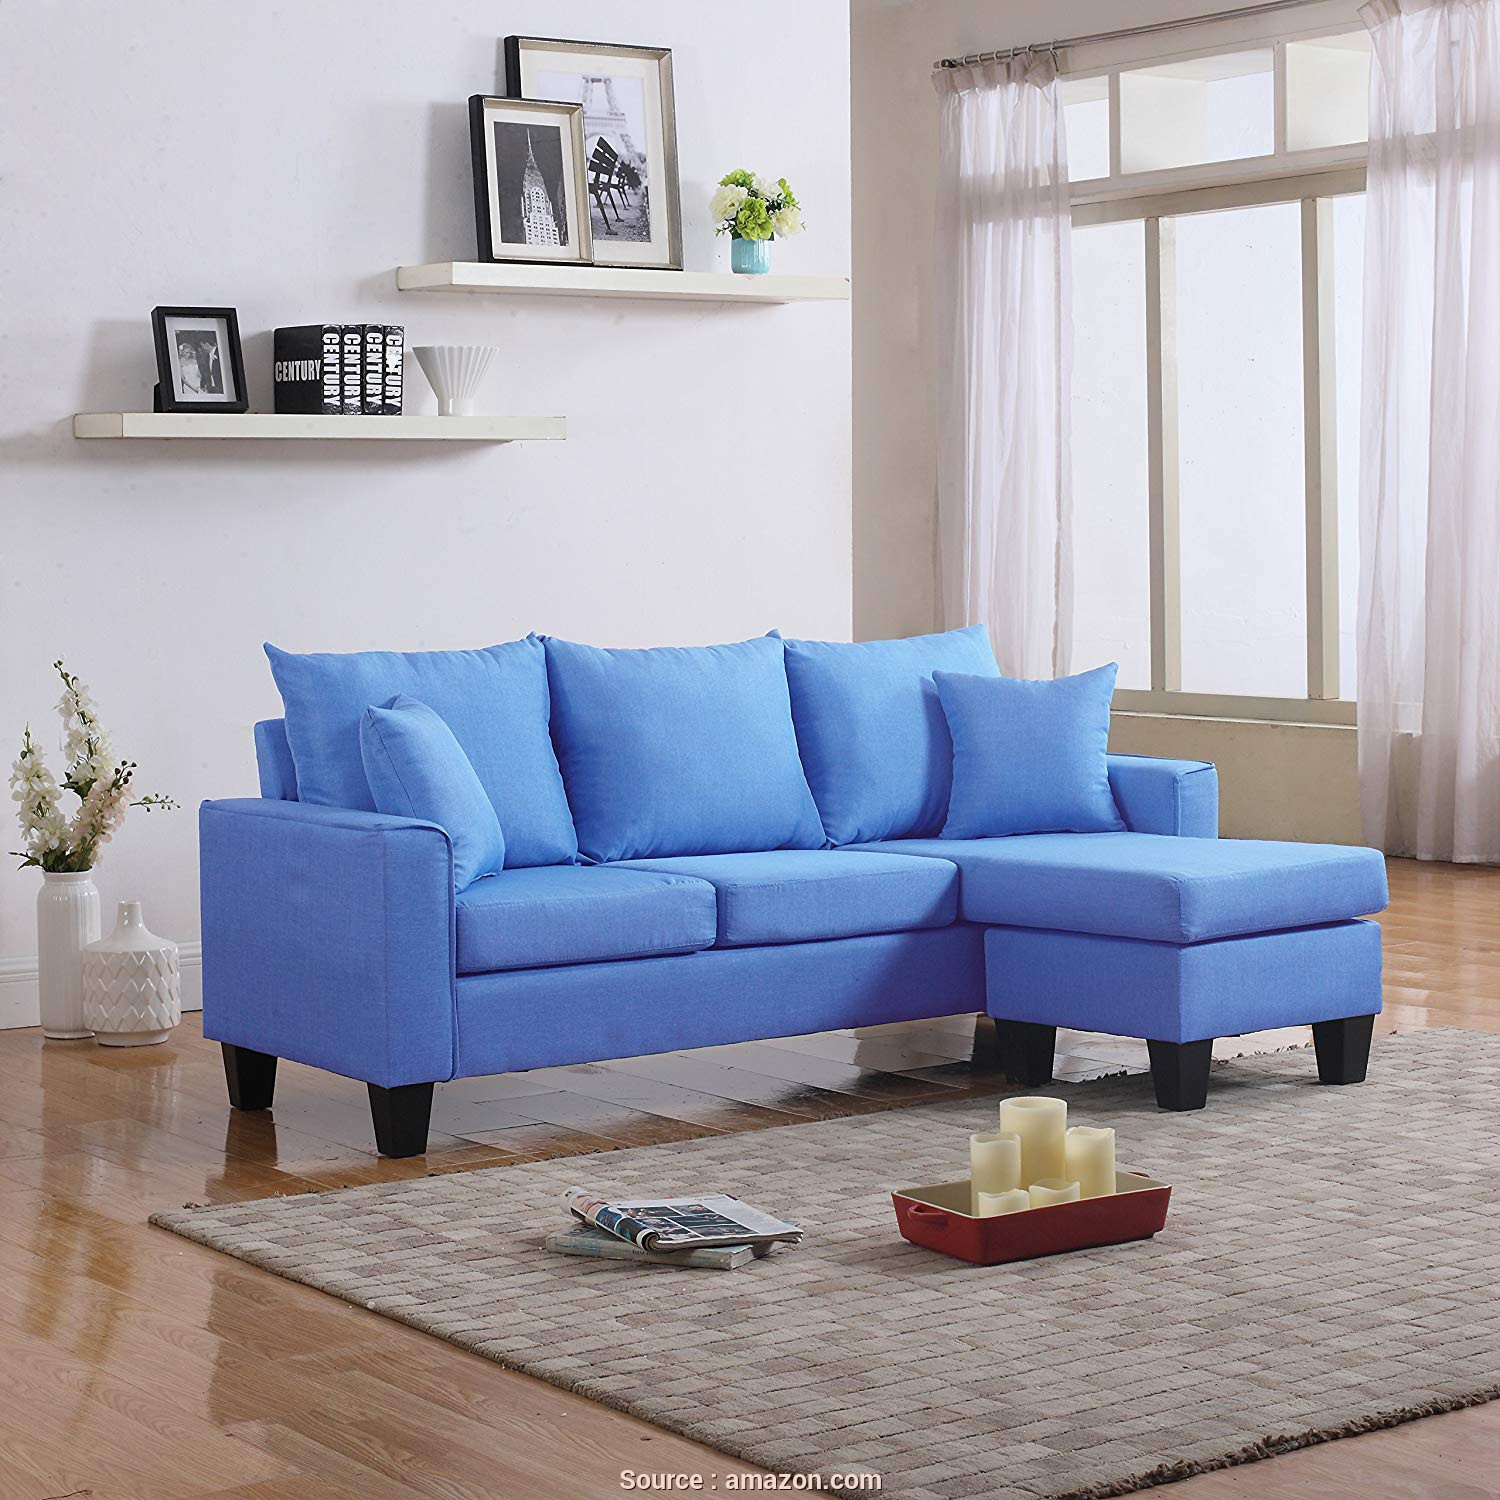 Divano Sofa, Eccezionale Amazon.Com: Divano Roma Furniture Modern Linen Fabric Small Space Sectional Sofa With Reversible Chaise (Sky Blue): Kitchen & Dining